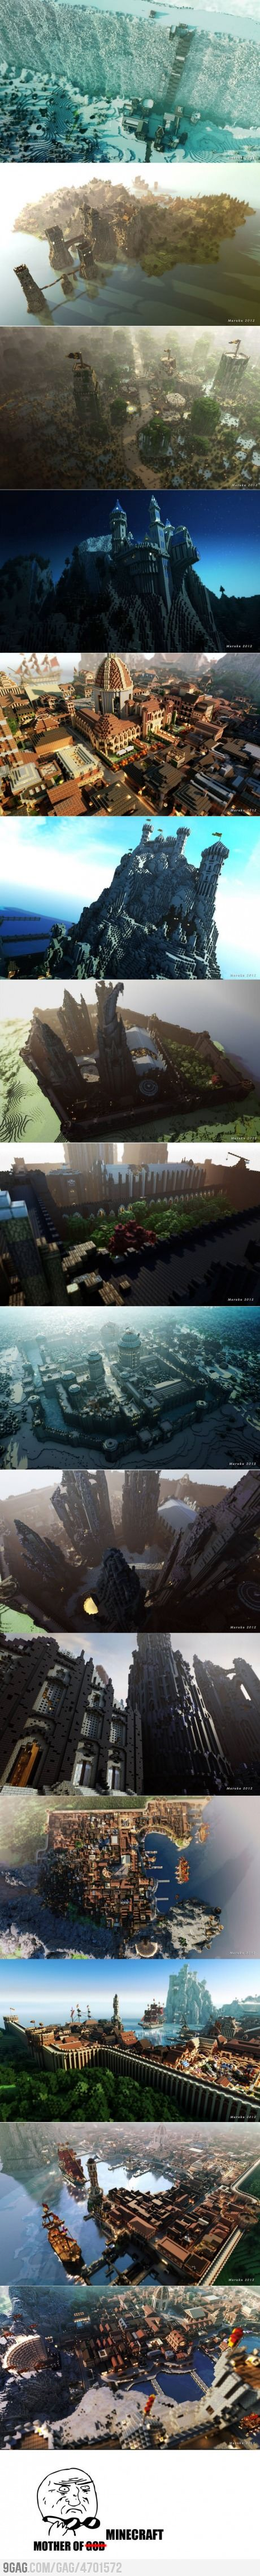 Game of Thrones in Minecraft... Not so much the Game of Thrones thing as much as the amount of effort and creativity this would have taken to do in Minecraft. Crazy!